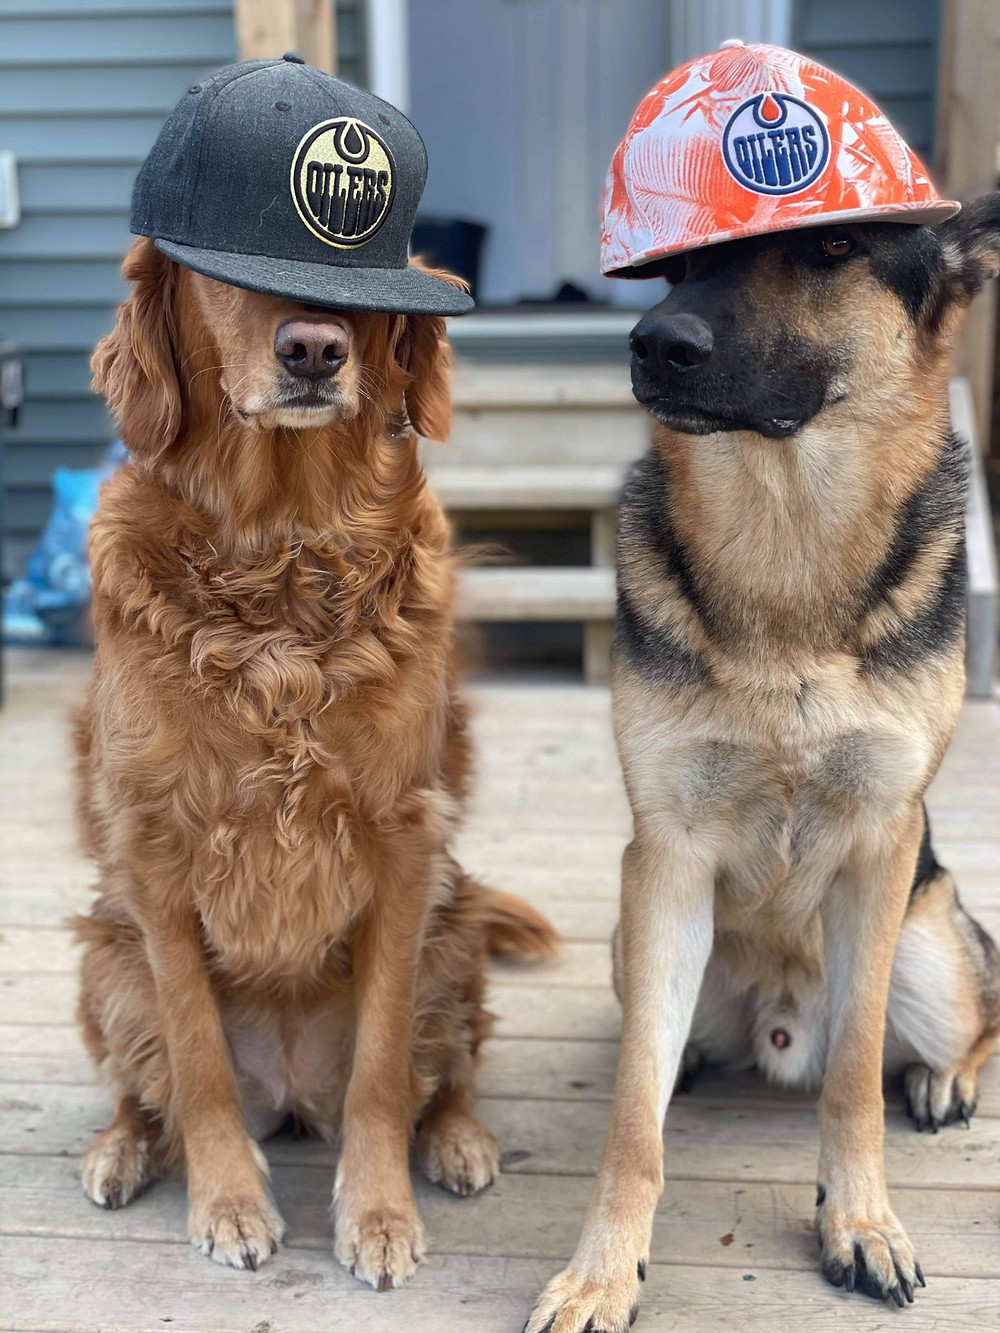 Oilers dogs